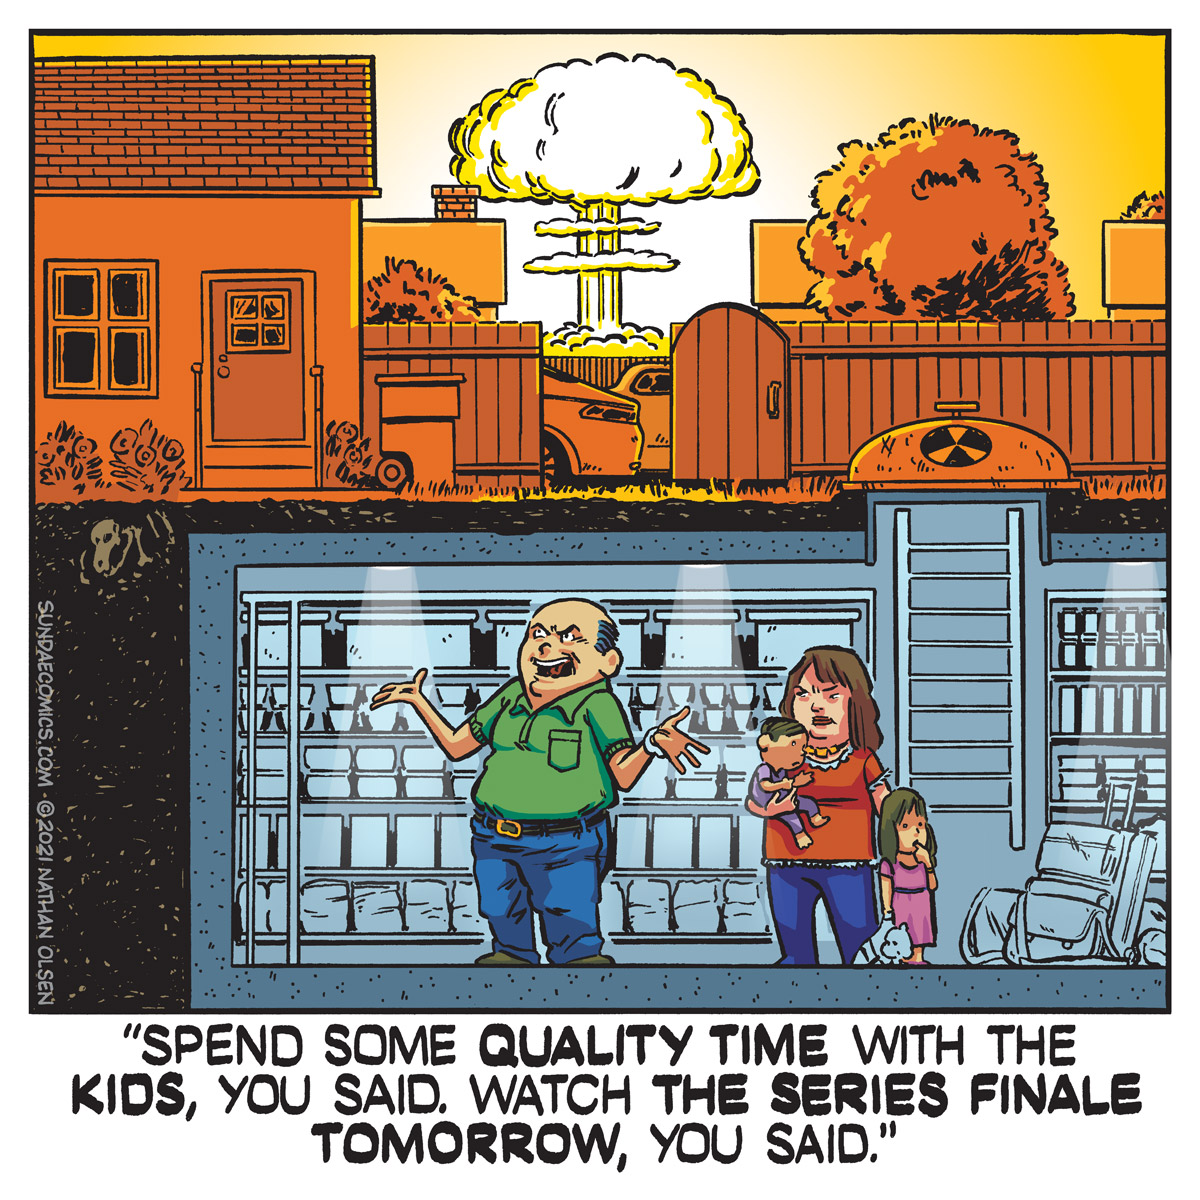 A silly webcomic about parental priorities and the benefits of binge watching television.